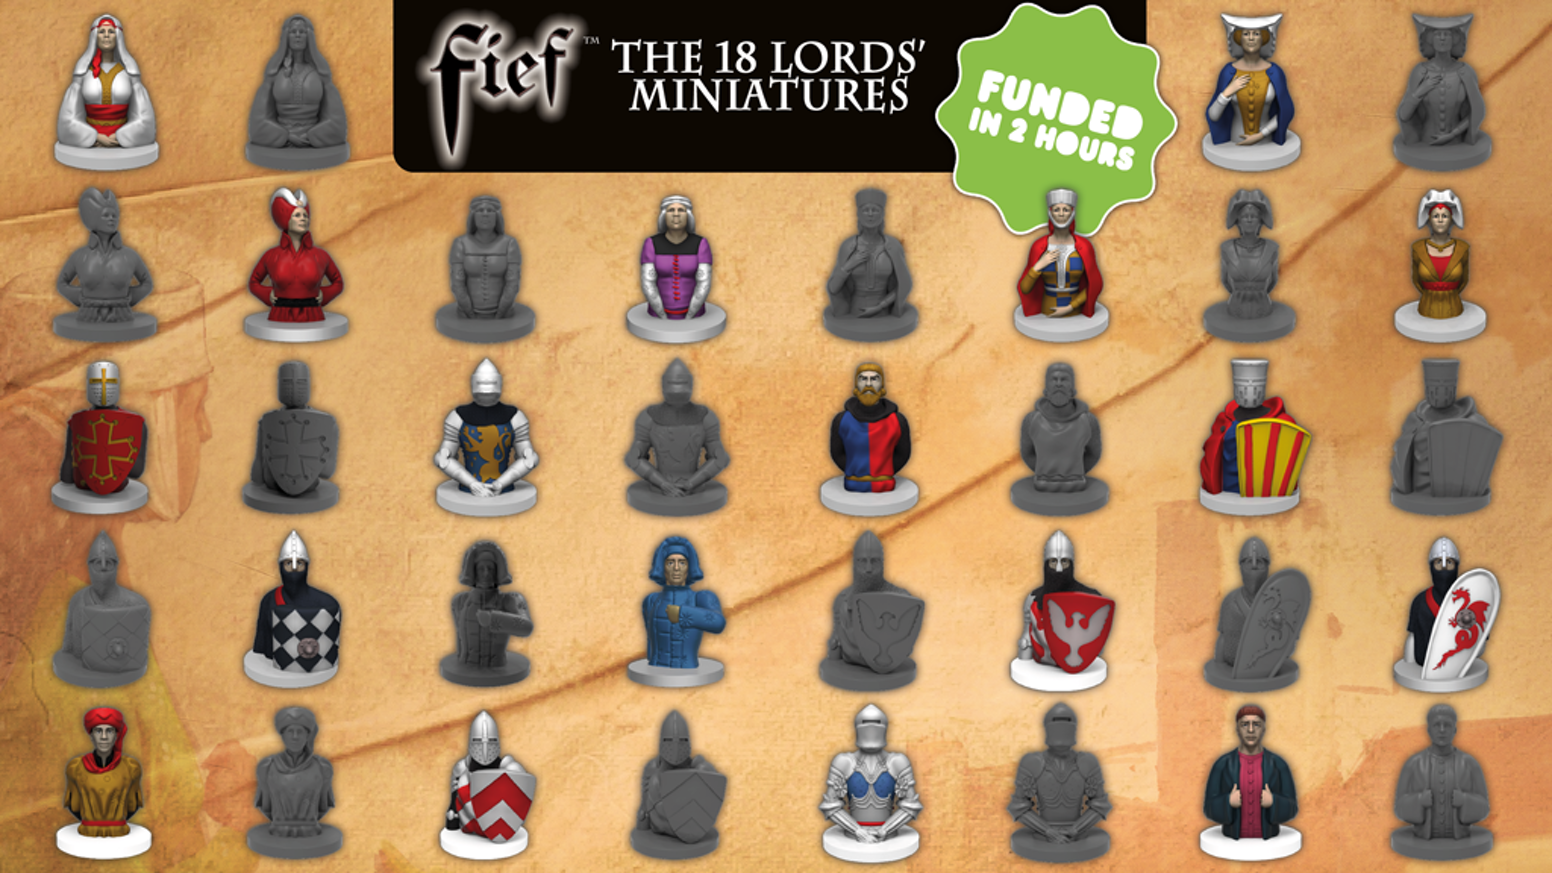 The goal of this Project is to produce a nice Box set containing the 18 Miniatures, painted or not, of the 18 Lords of the game FIEF.